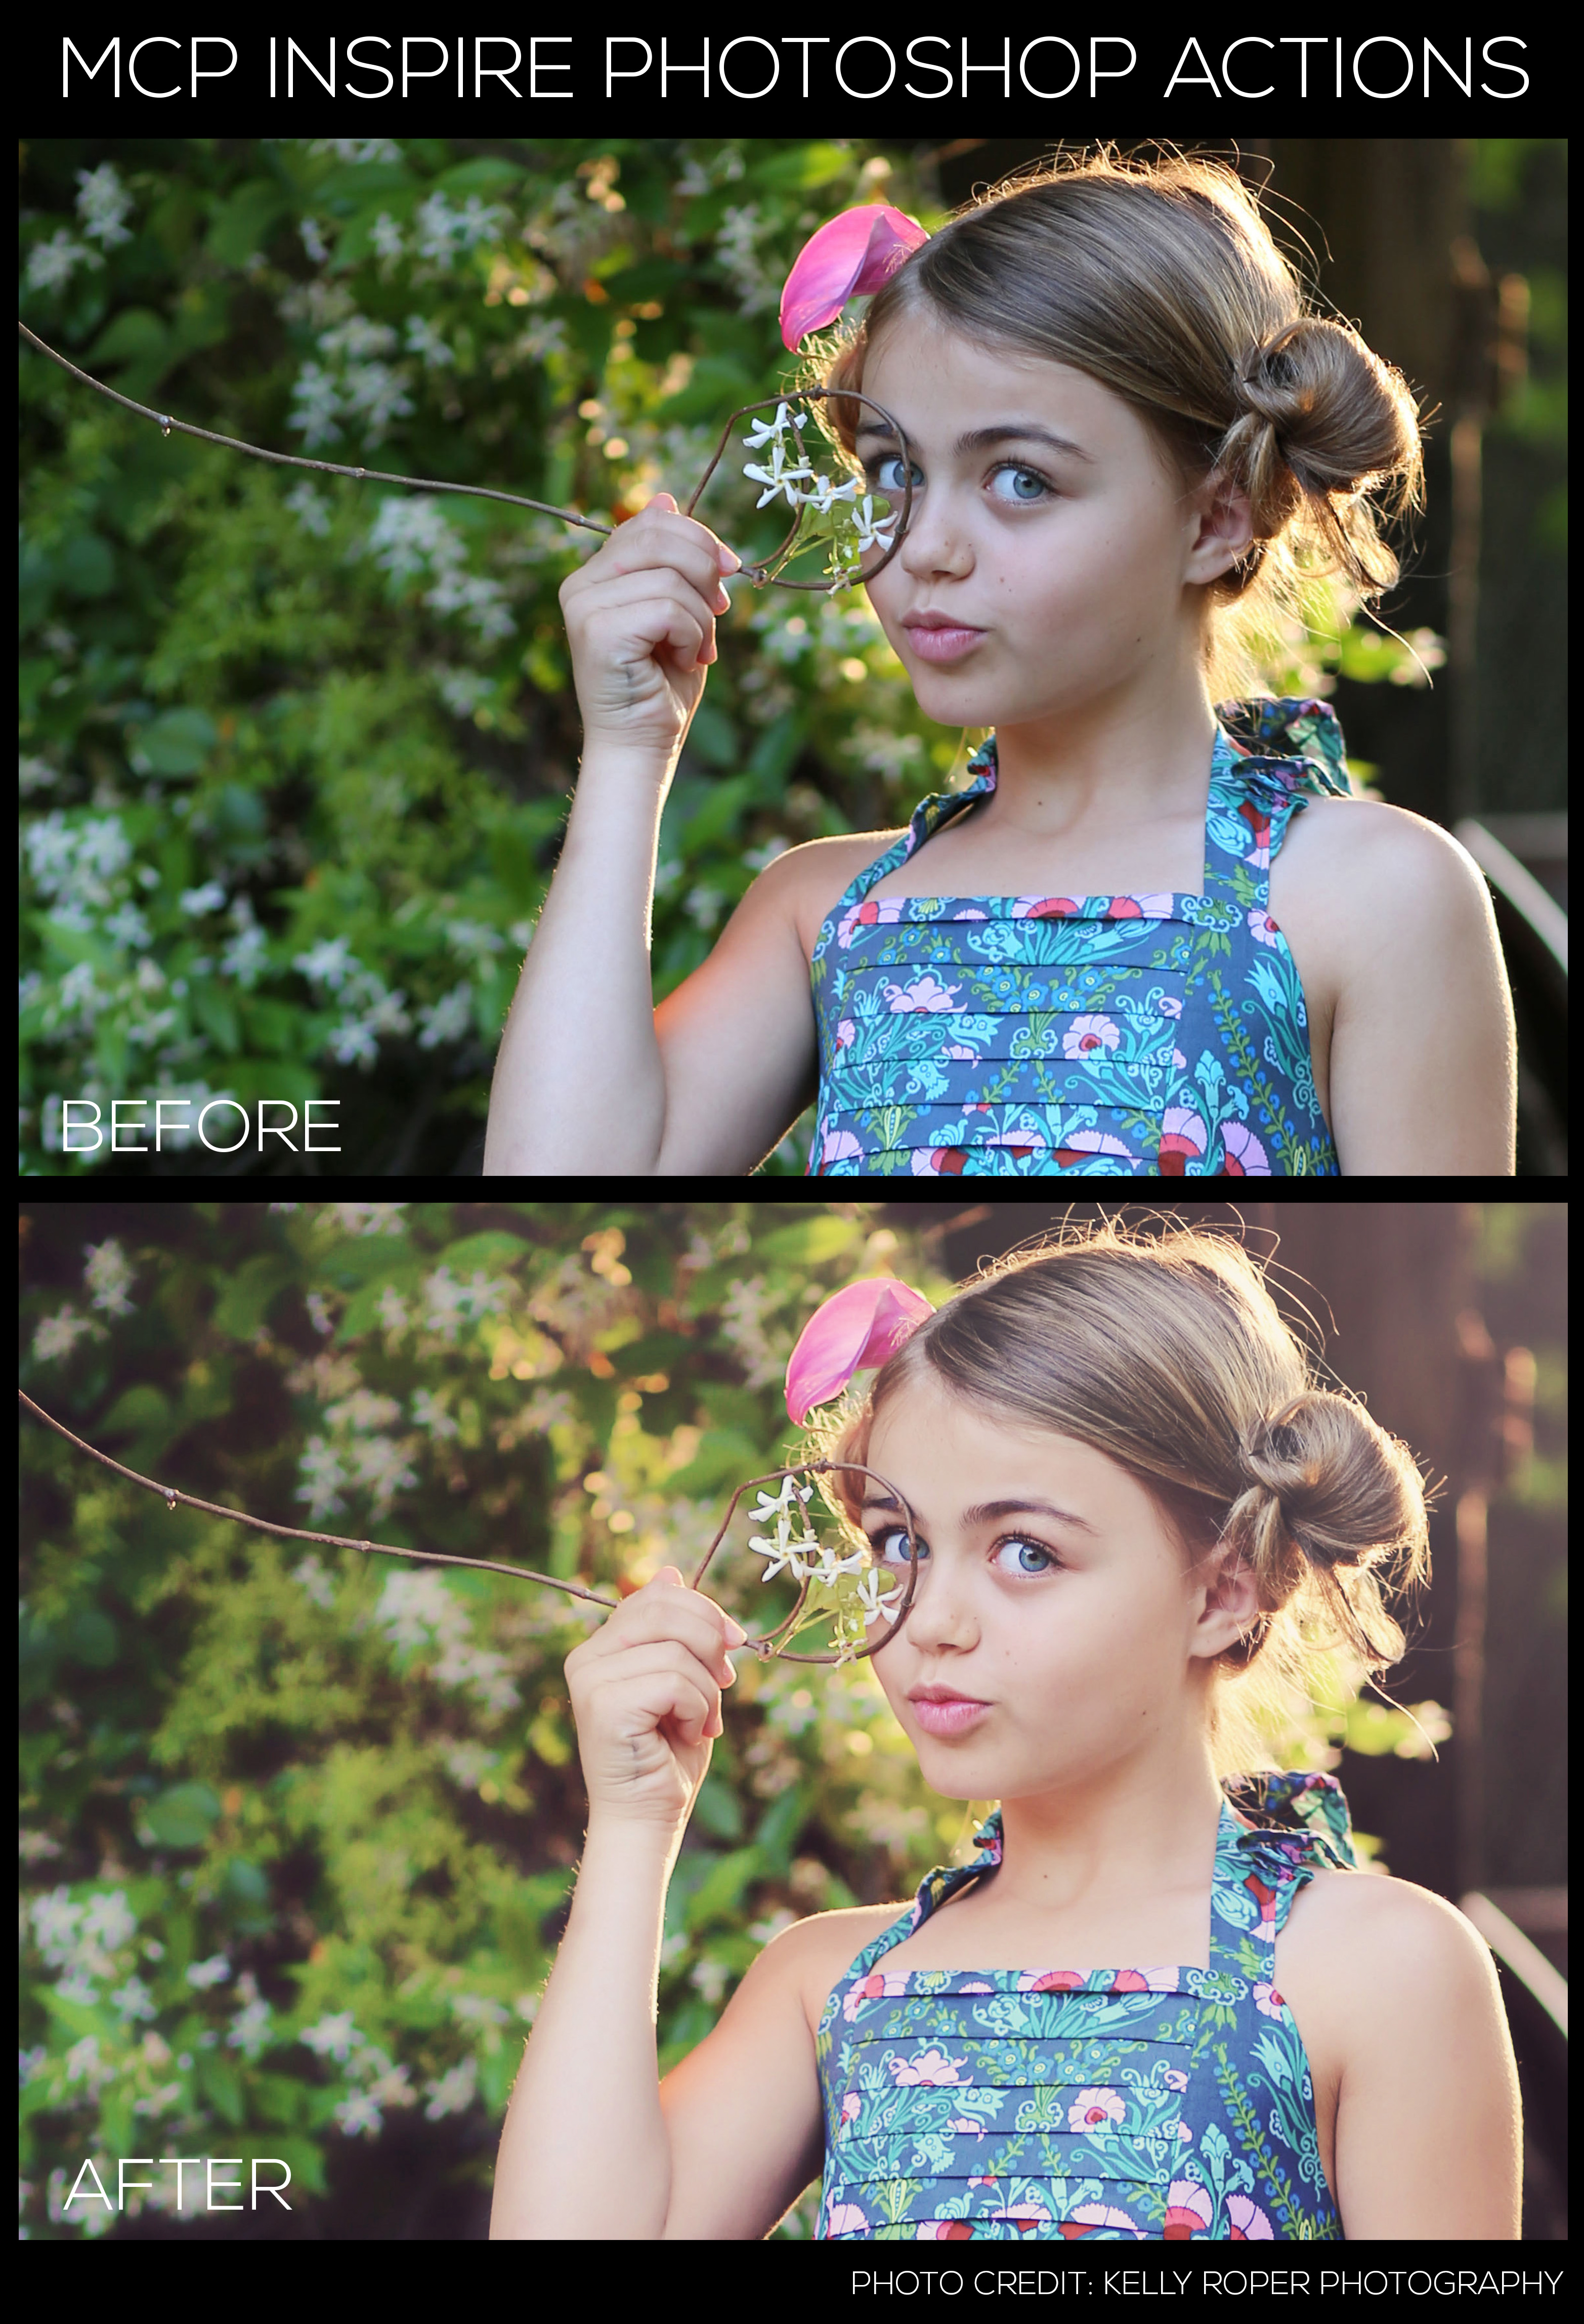 Inspire-BA-kelly-roper MCP Inspire Photoshop Action Set is Now Available Announcements Photoshop Actions